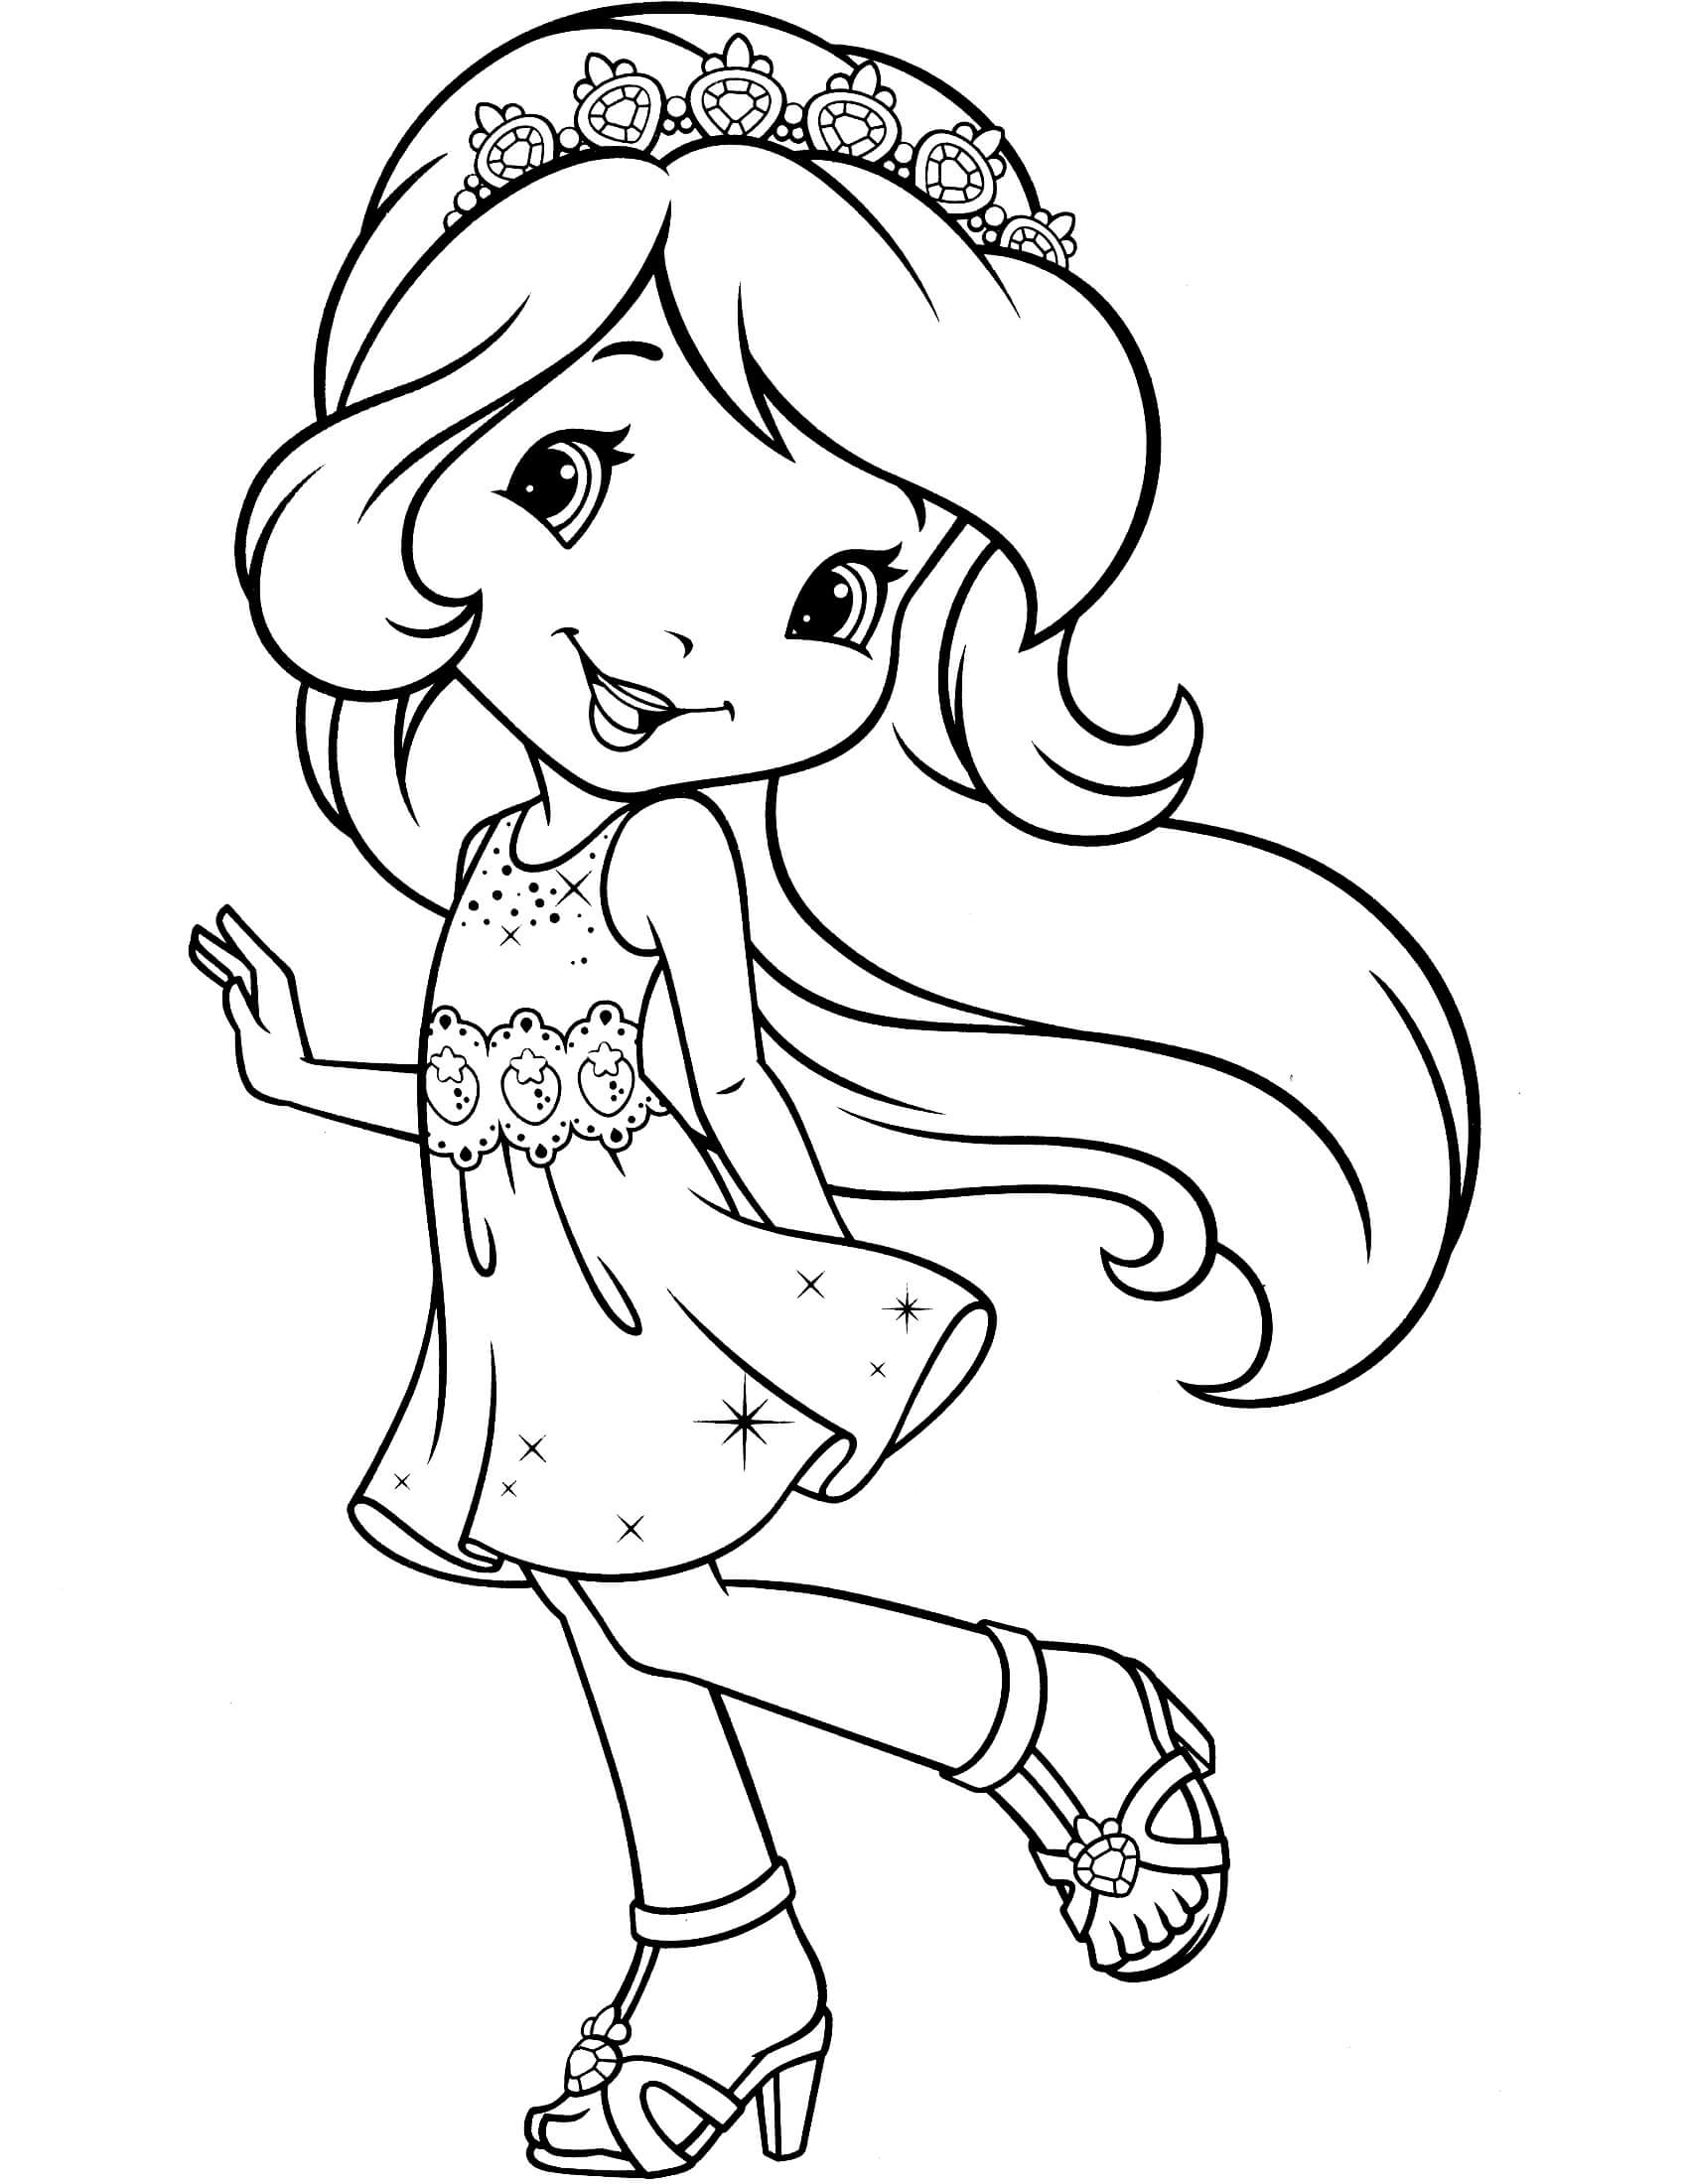 strawberry girl coloring pages strawberry shortcake drawing at getdrawings free download strawberry pages girl coloring